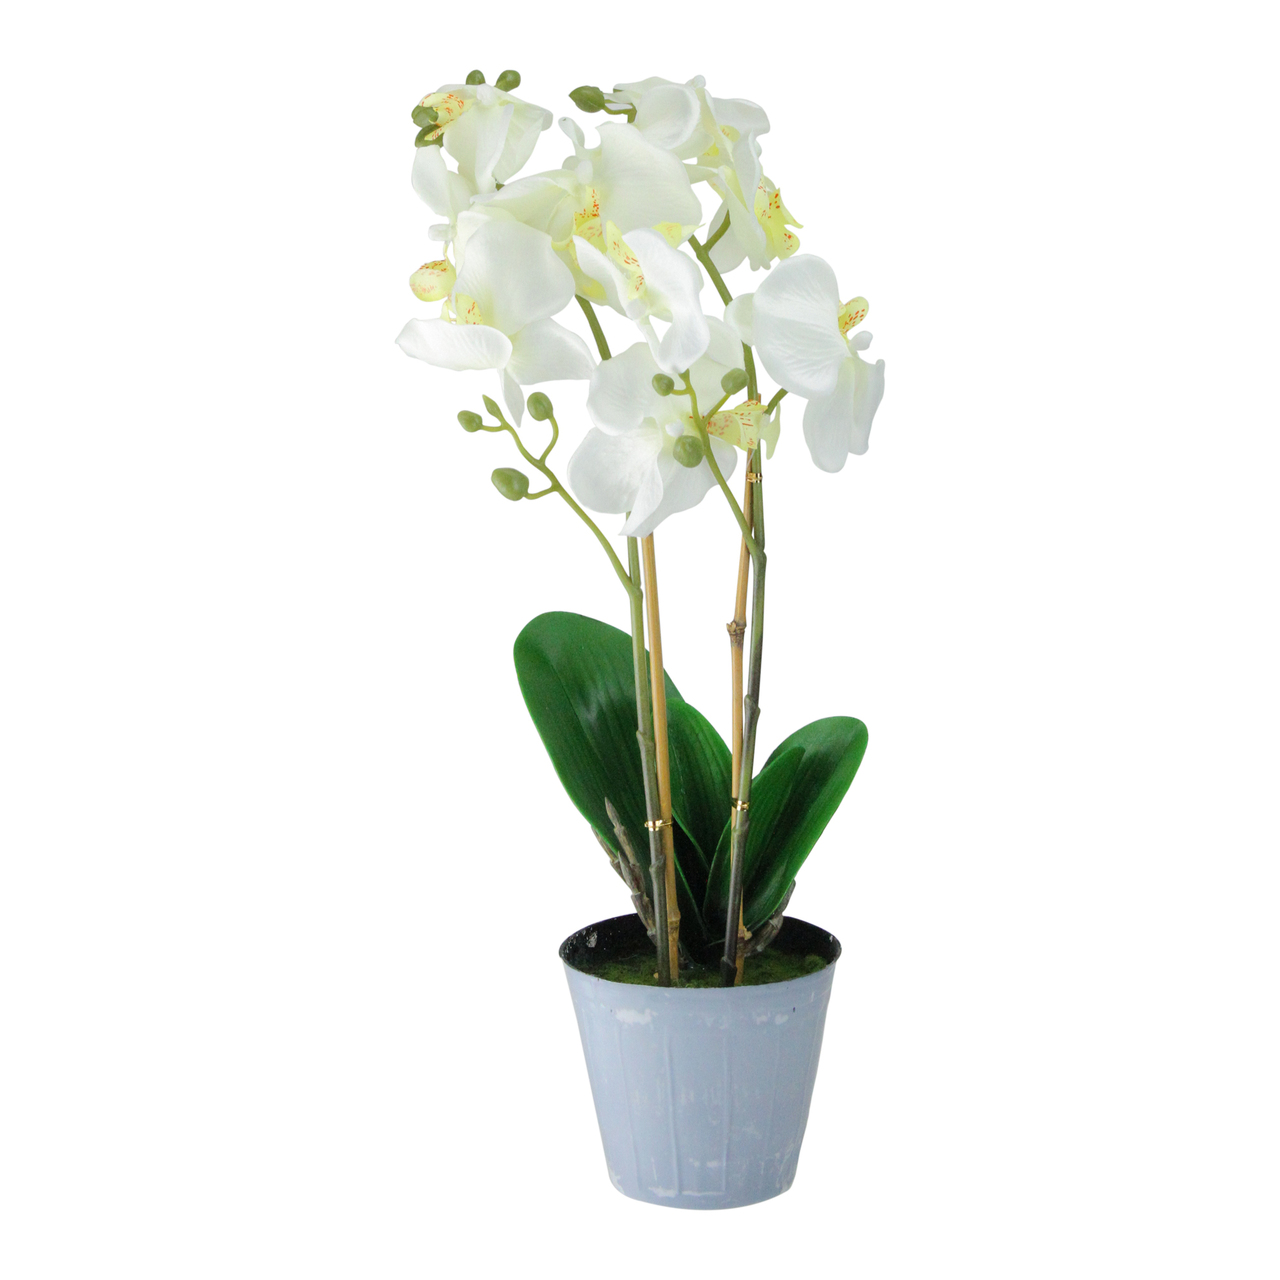 Potted white phalaenopsis orchid artificial silk flower arrangement 165 potted white phalaenopsis orchid artificial silk flower arrangement 32606682 mightylinksfo Image collections